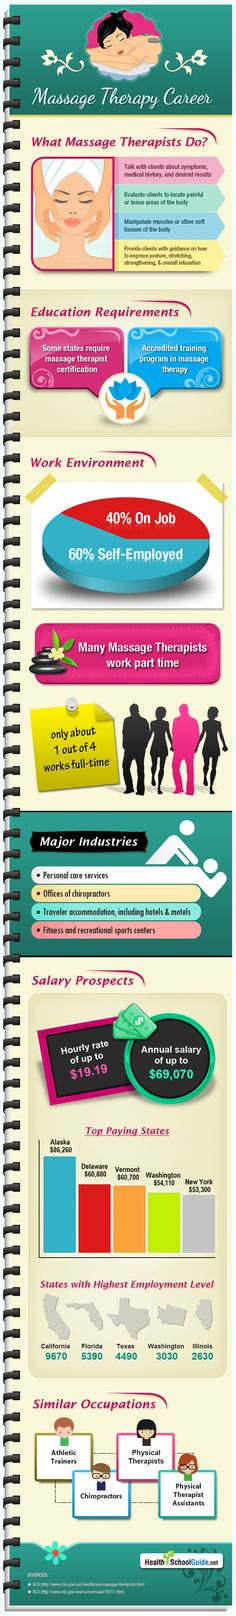 Career infographic  The No 1 Thing You Should Avoid After Getting